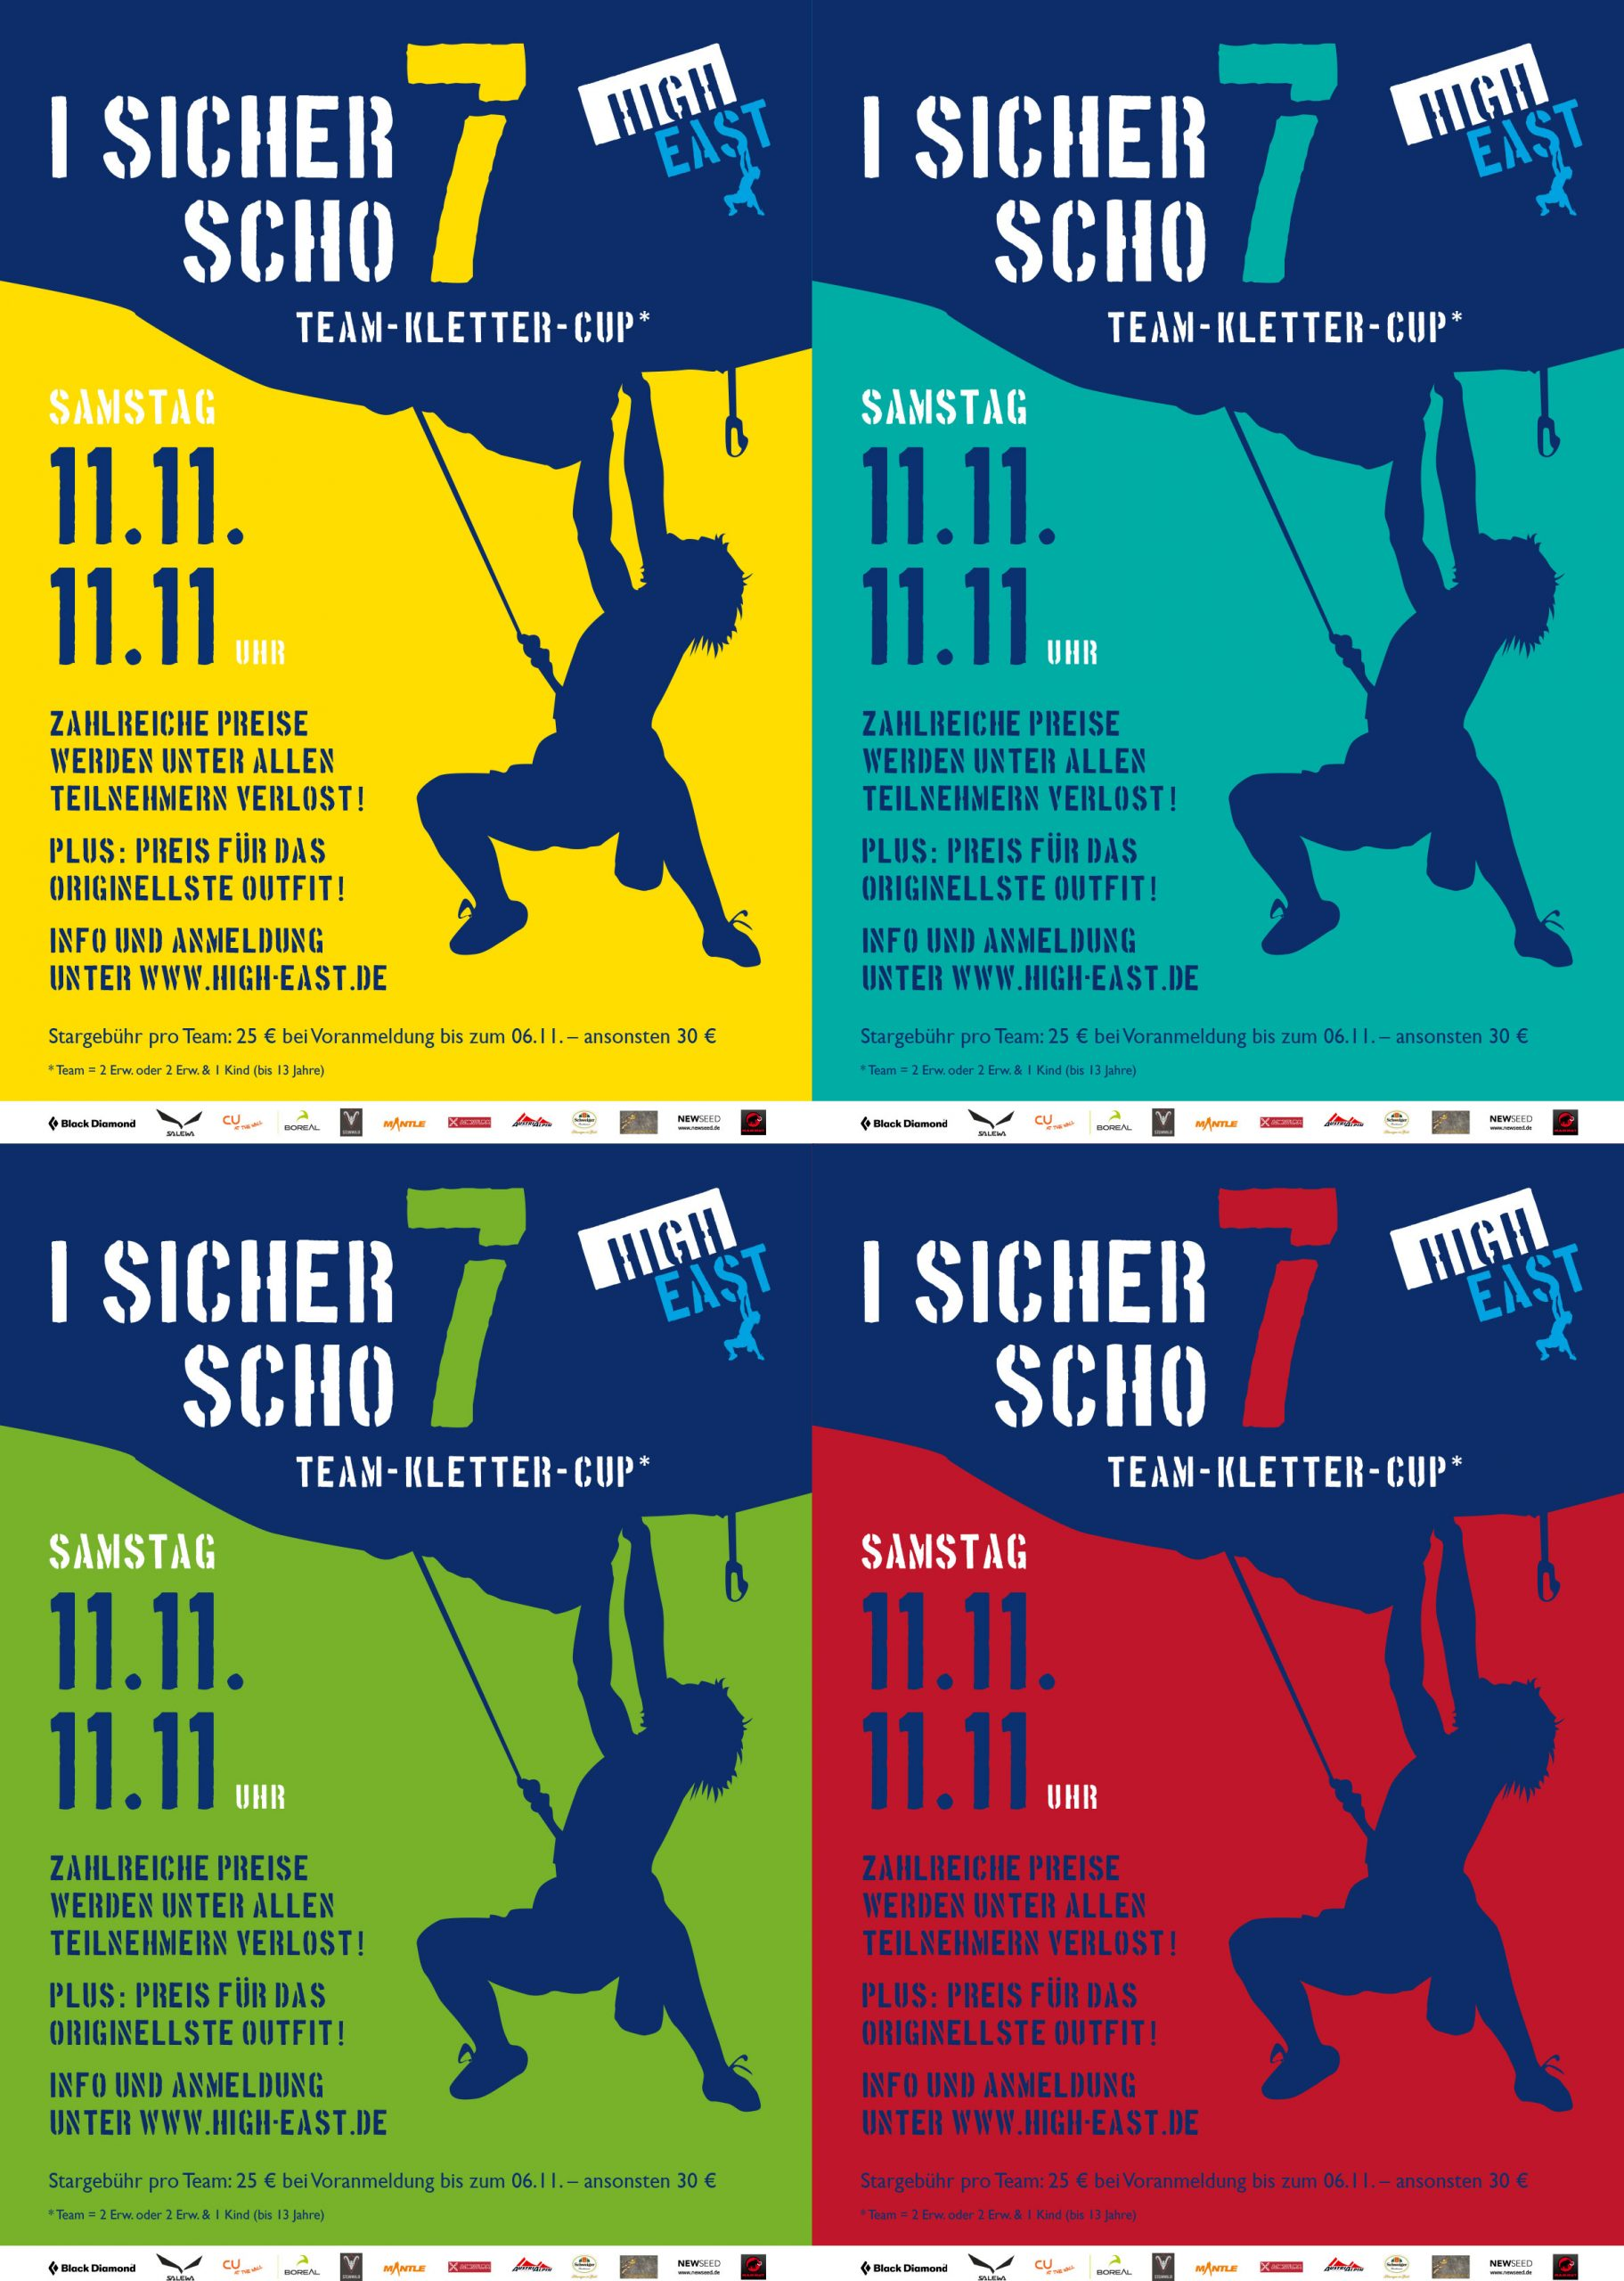 Poster High-East – I sicher scho 7